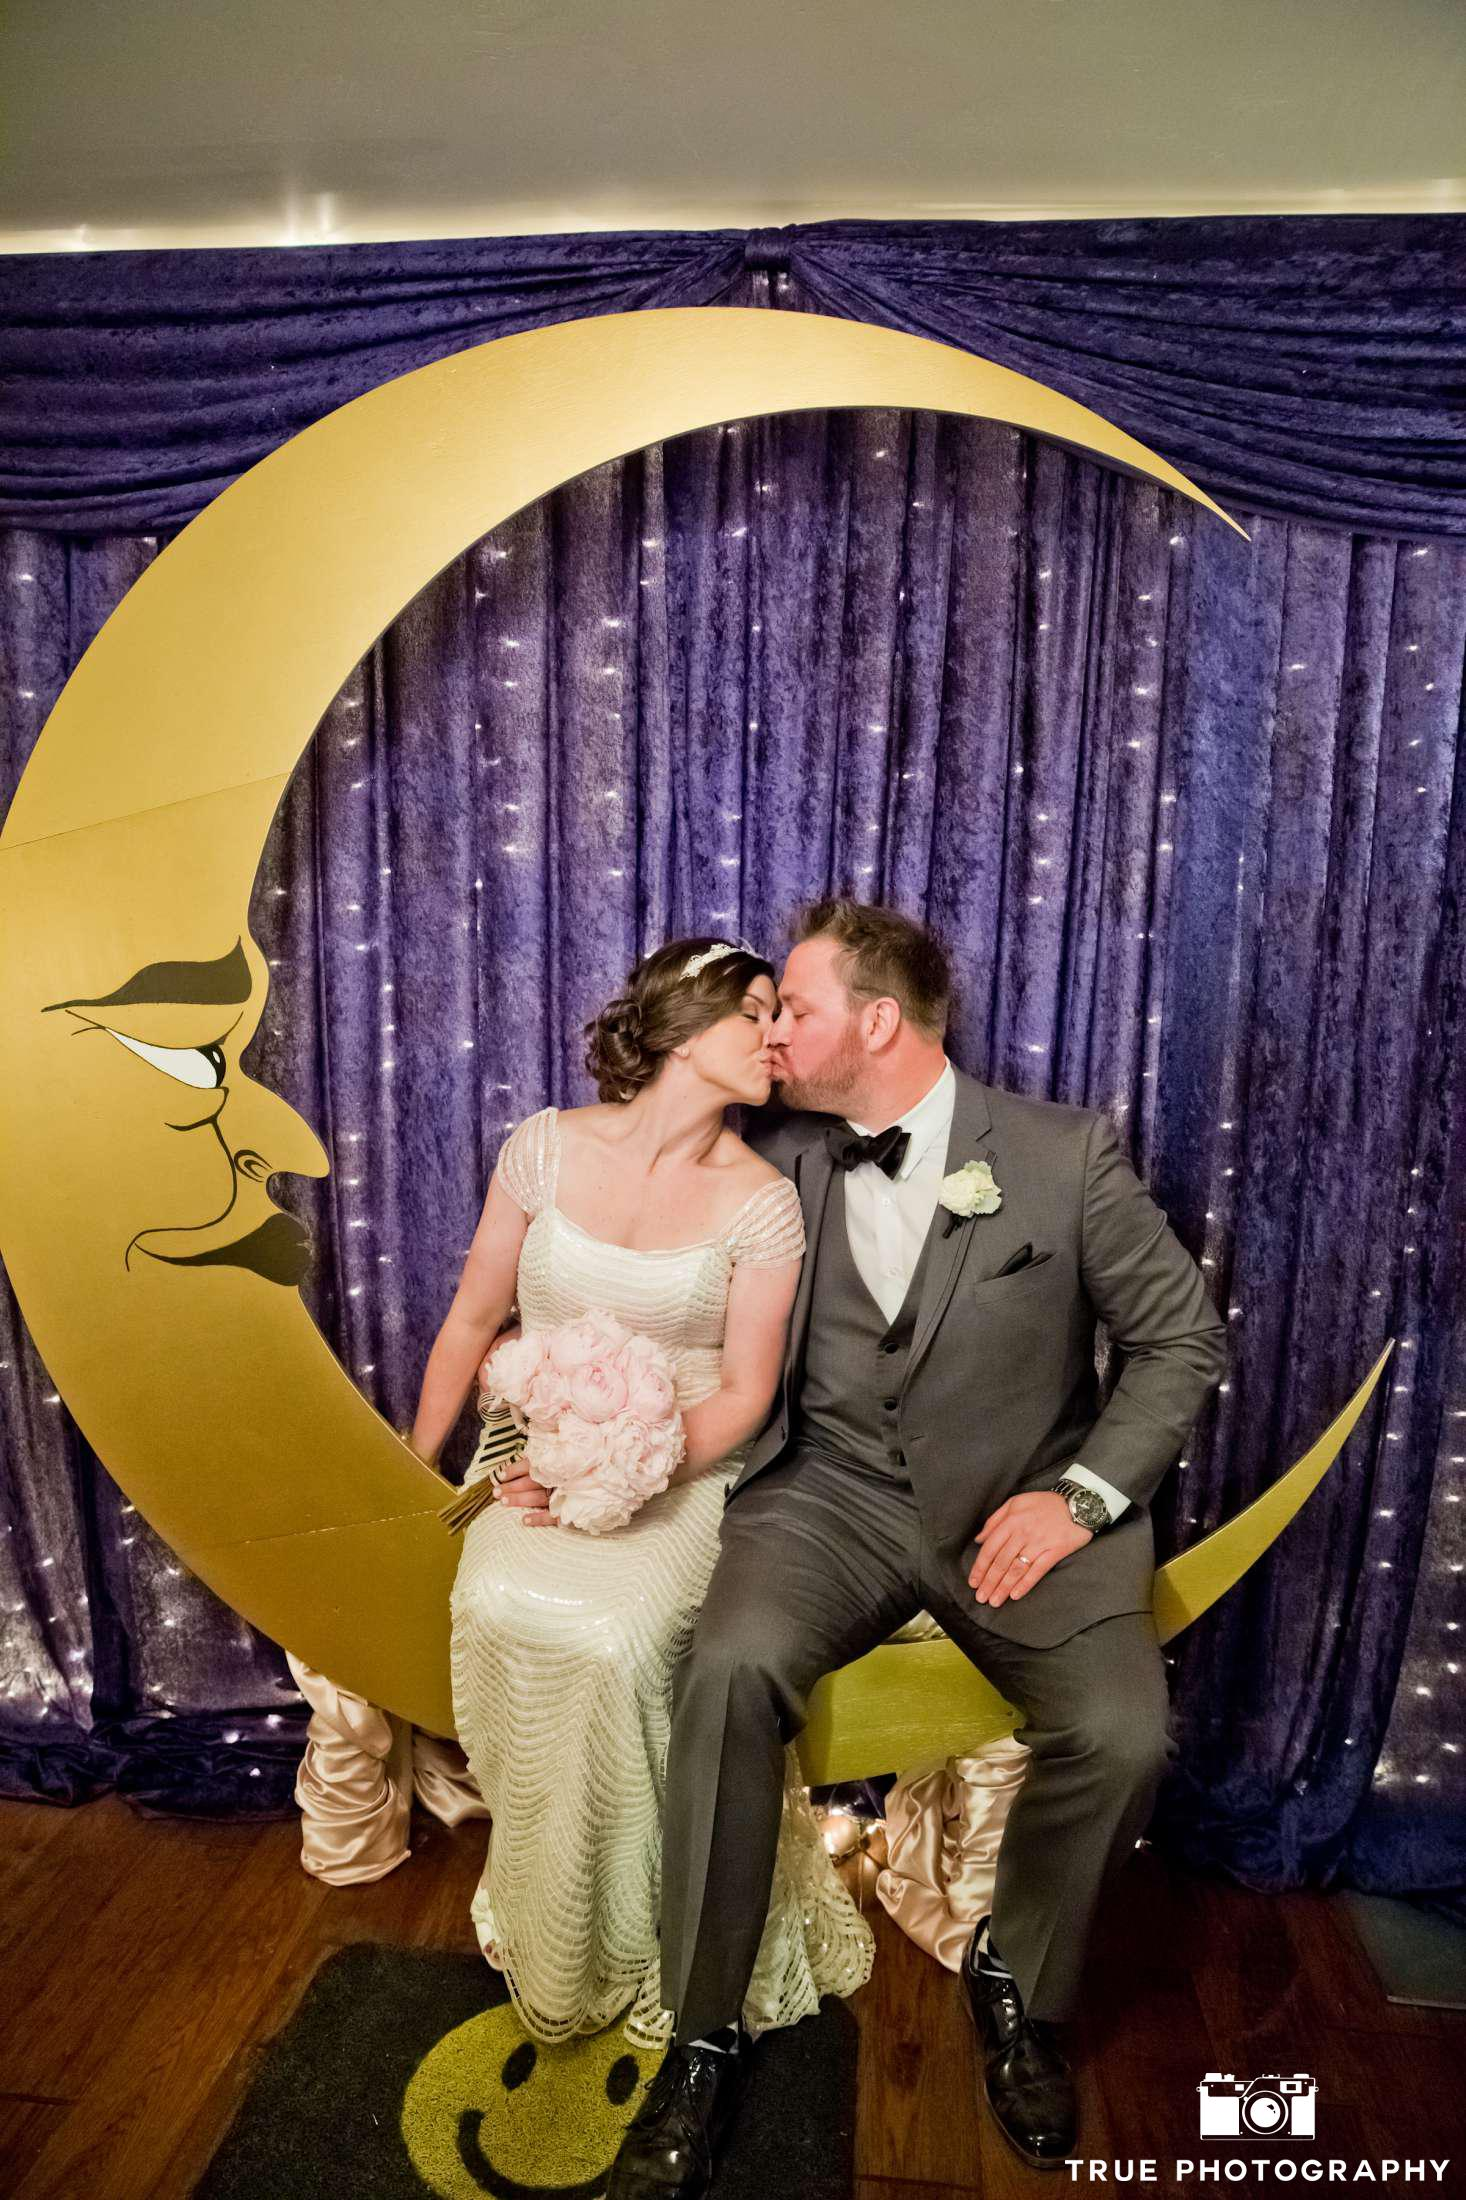 The Man in the Moon Will Help to Light Up Your Special Day